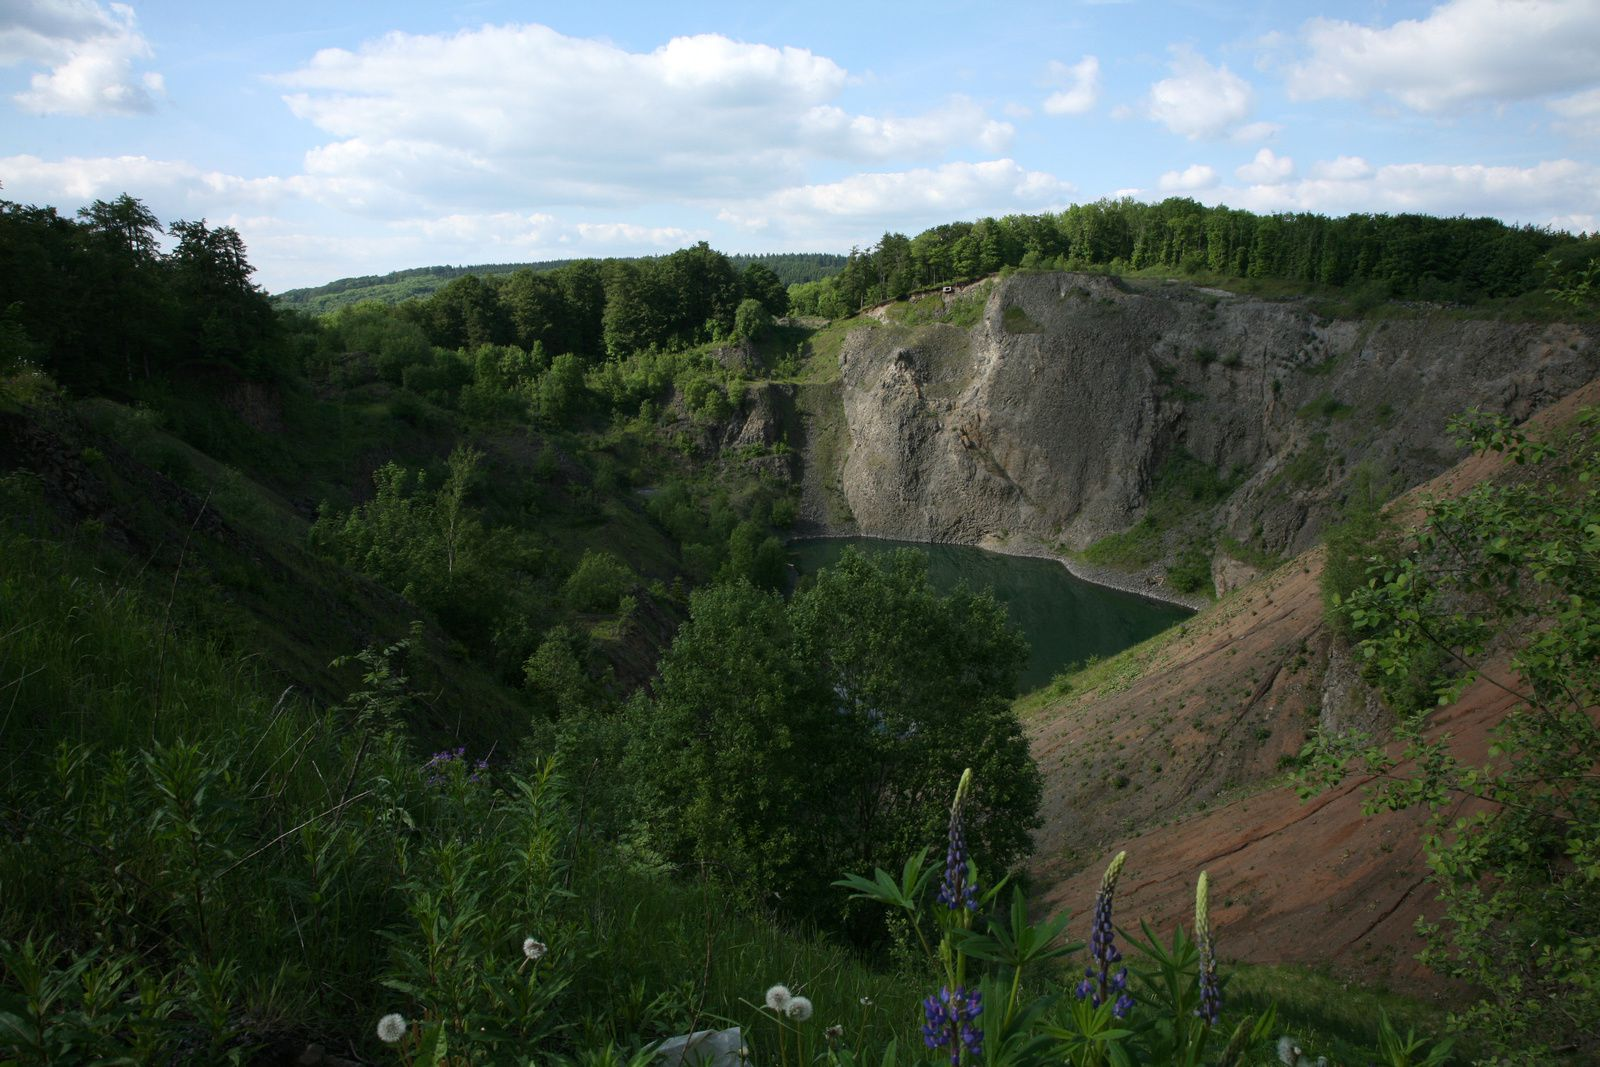 """Unnamed"" quarry in Scharzenberg - photo © Bernard Duyck 05.2014"